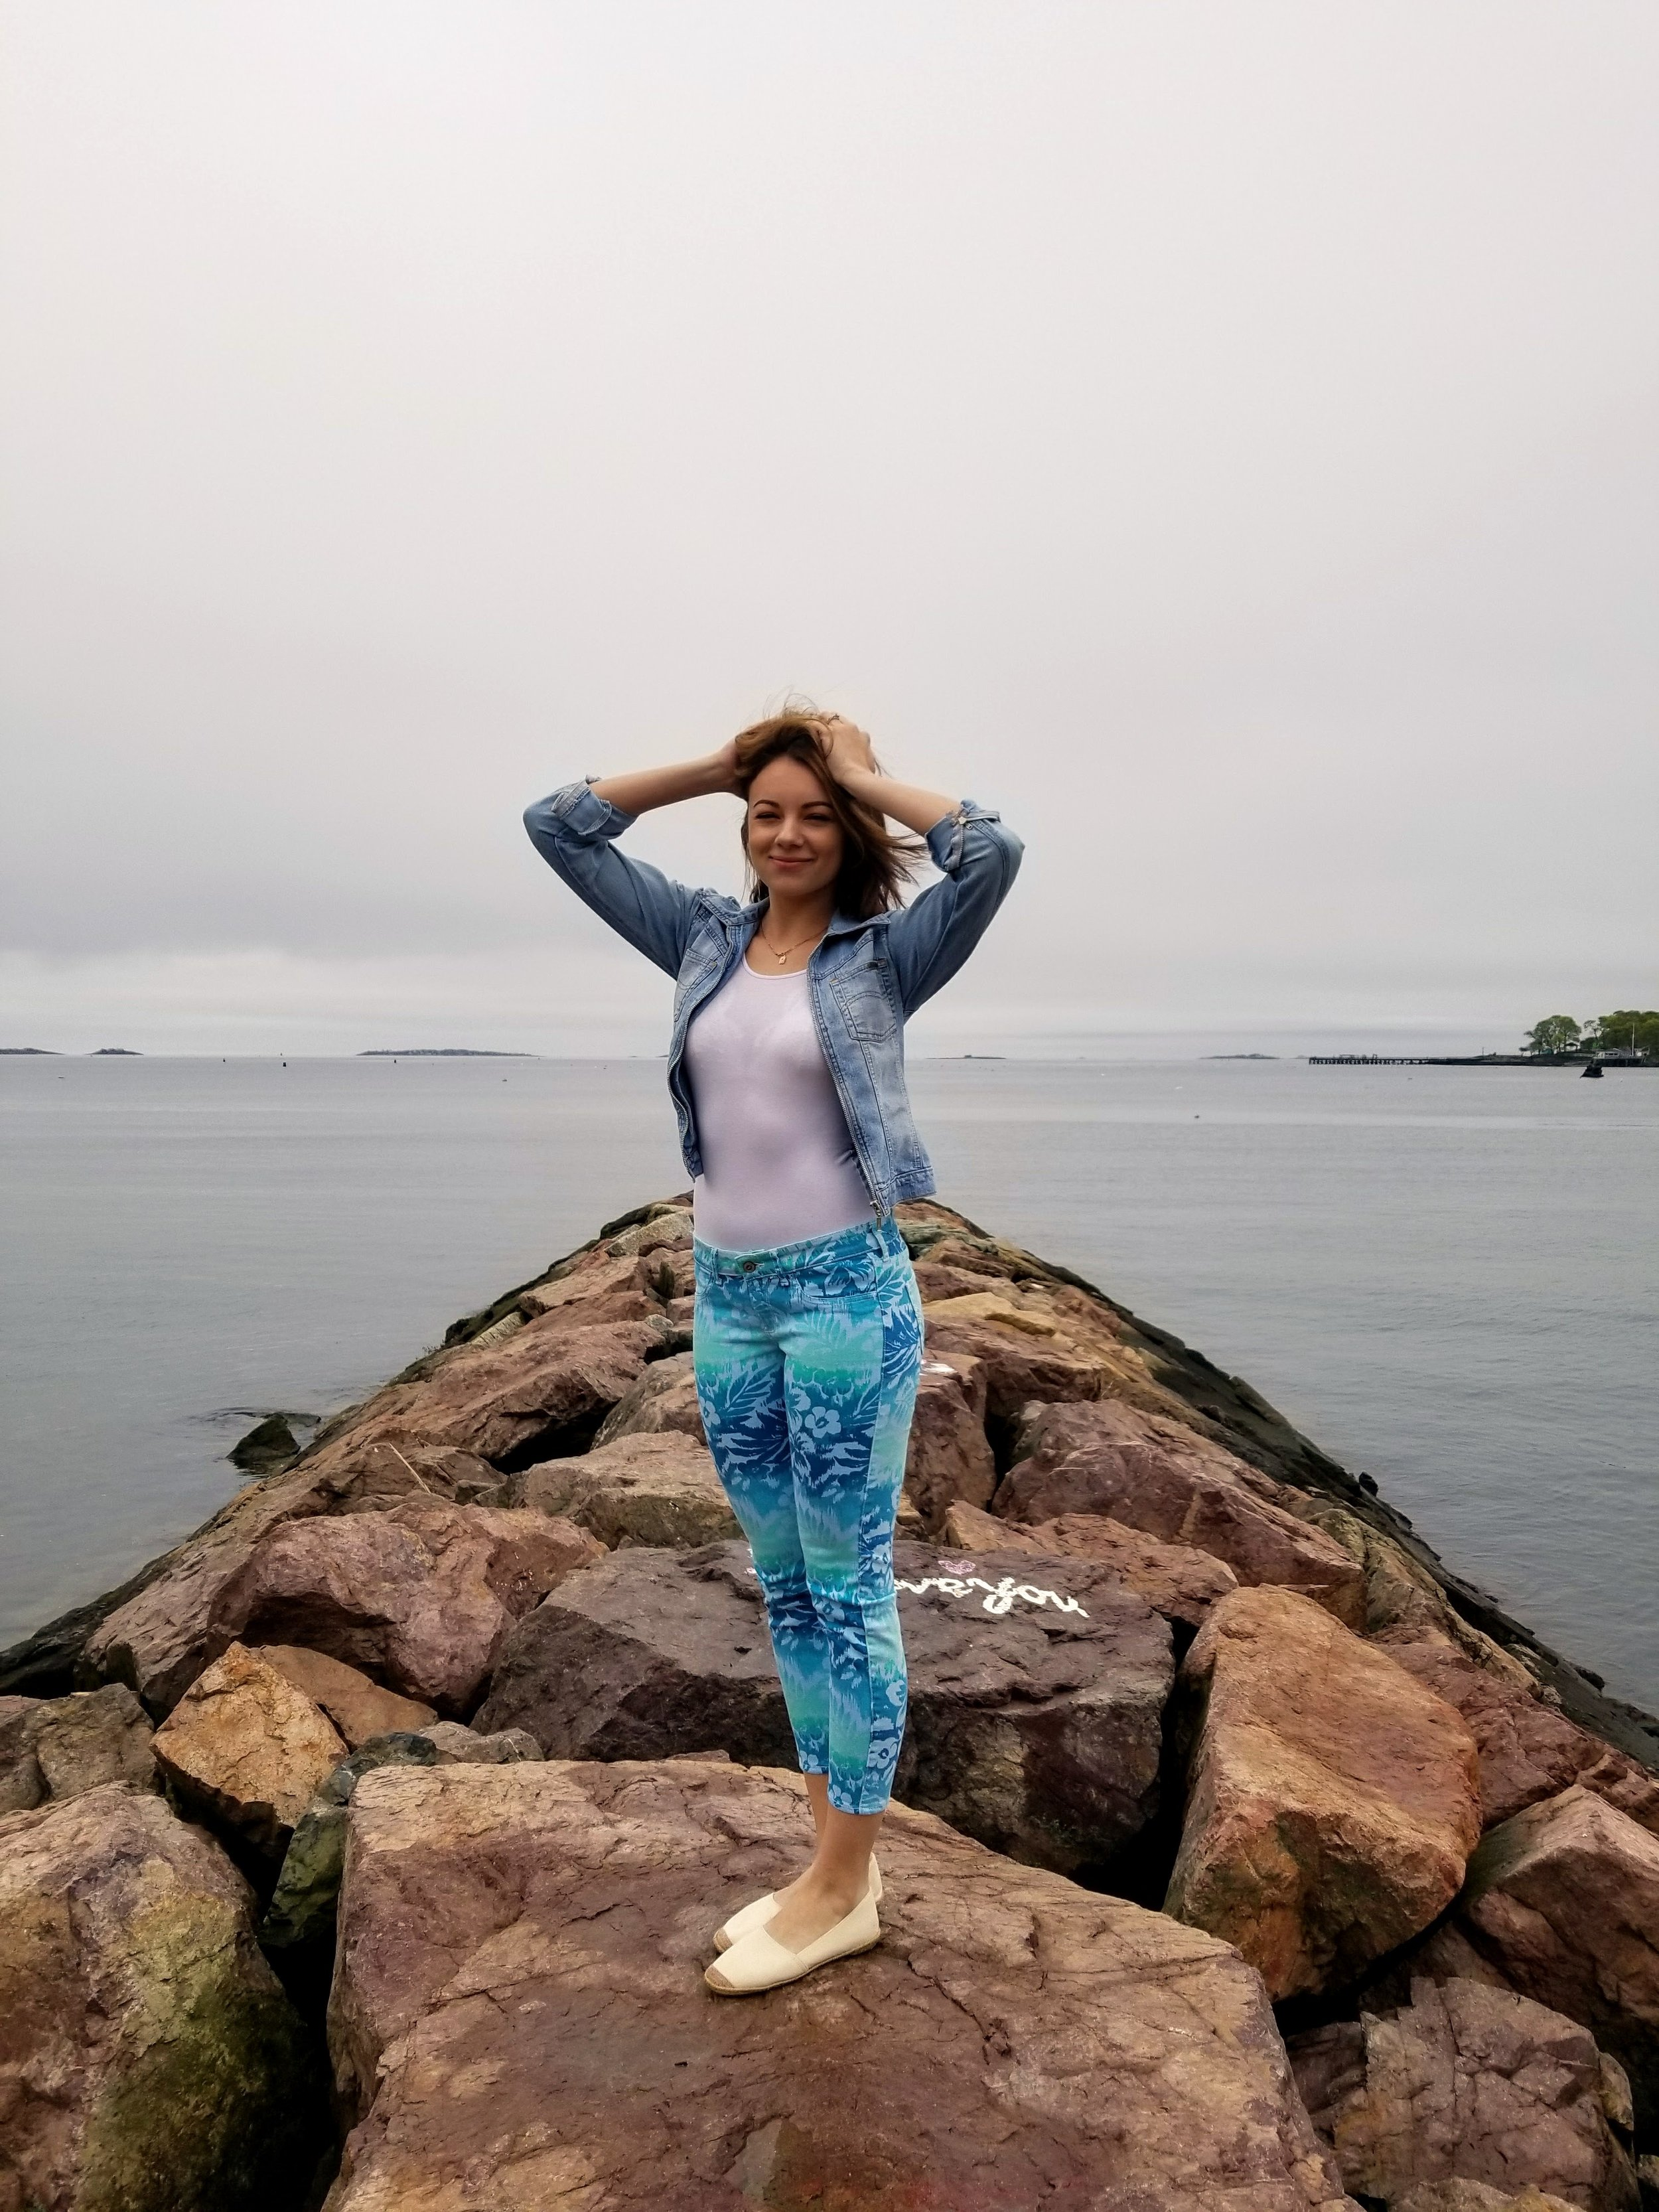 A blogger posing by the beach, wearing colorful pants with blue and green pattern, white t-shirt, jean jacket.